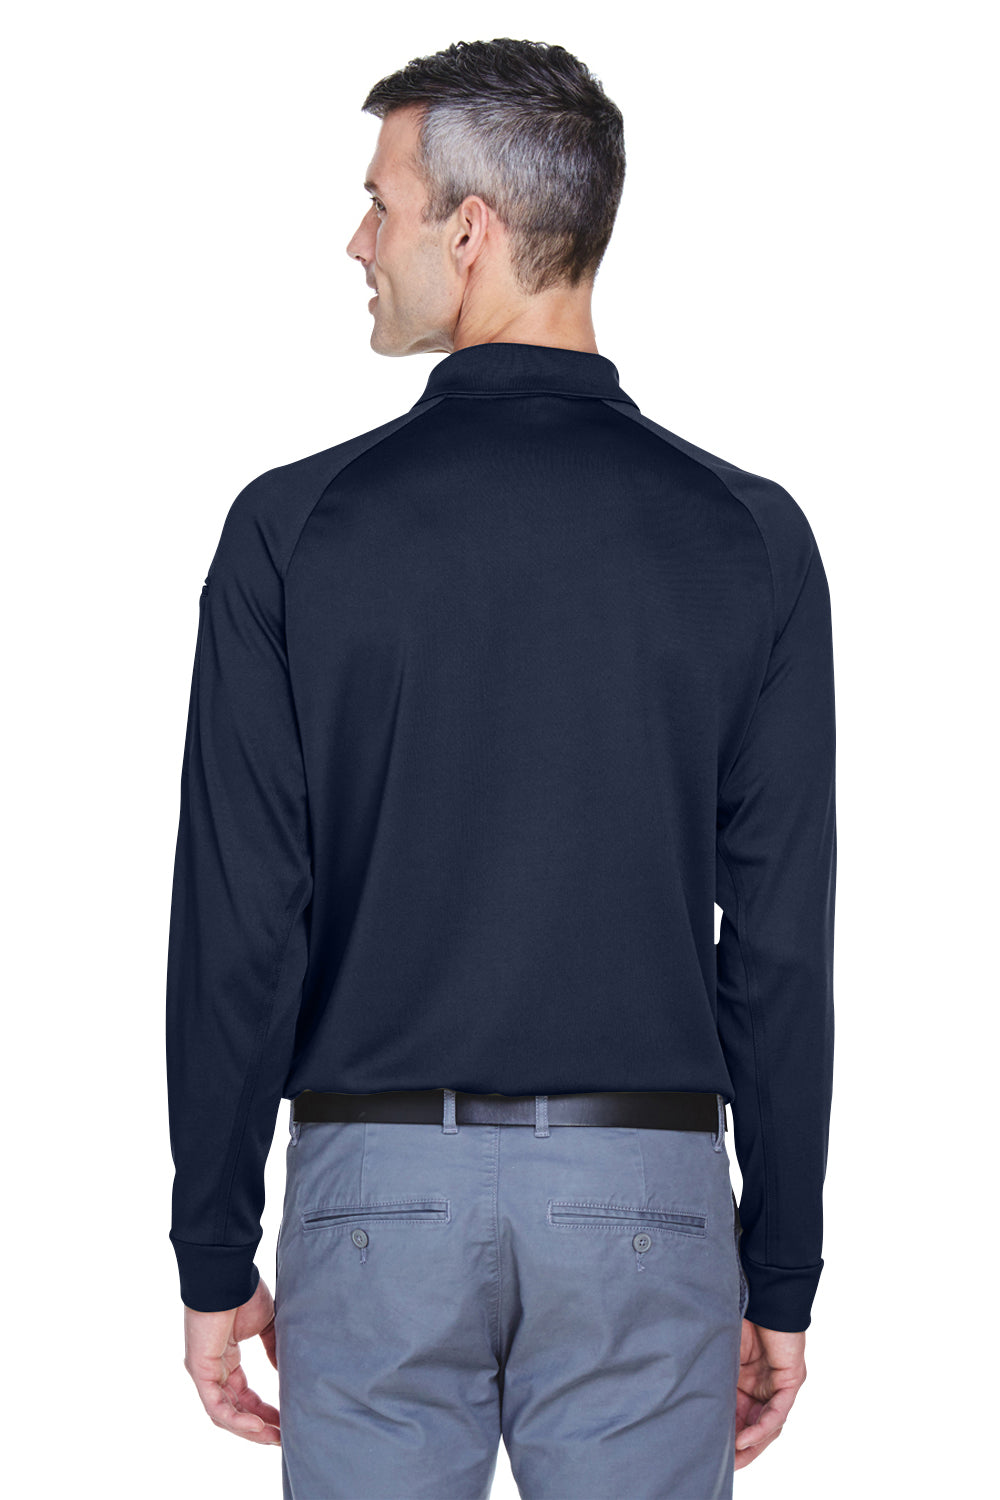 Harriton M211L Mens Advantage Tactical Moisture Wicking Long Sleeve Polo Shirt Navy Blue Back